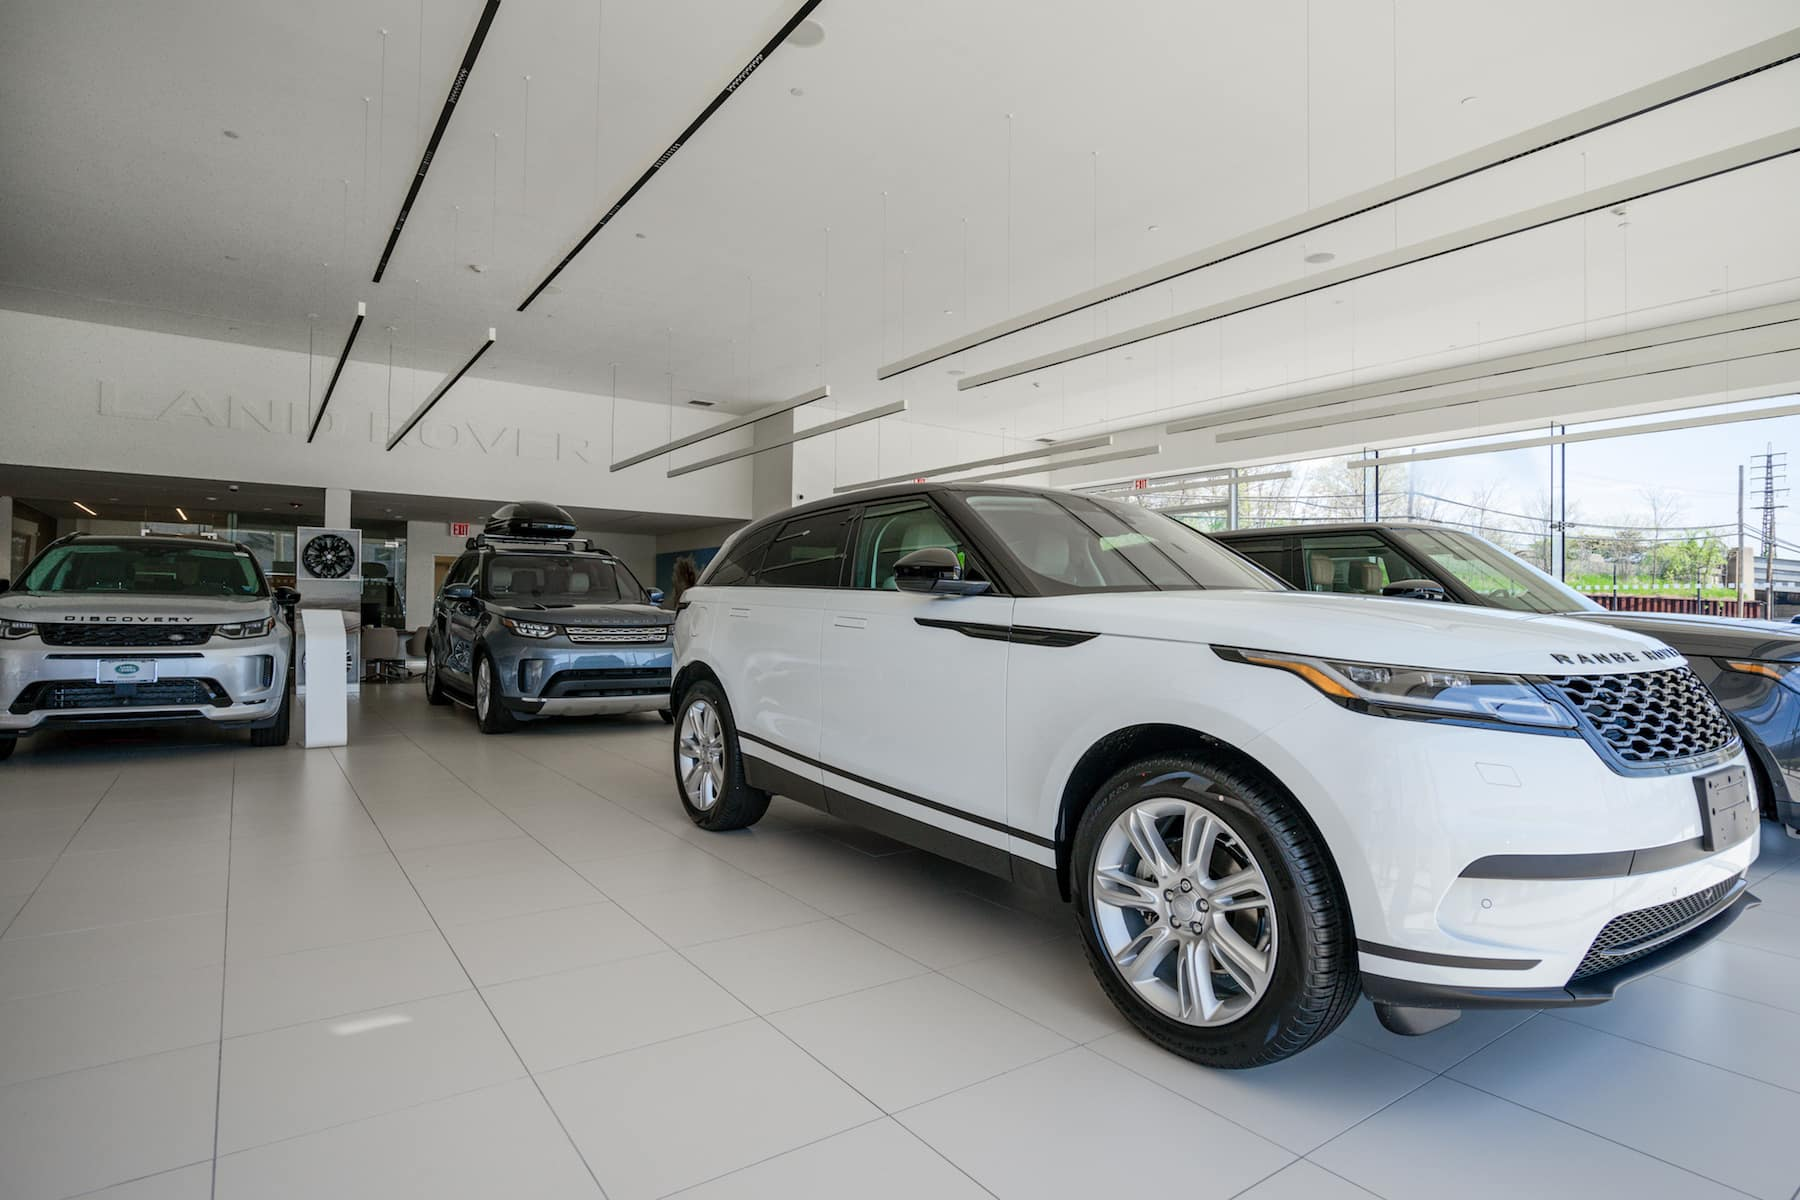 Leasing or Buying a Land Rover